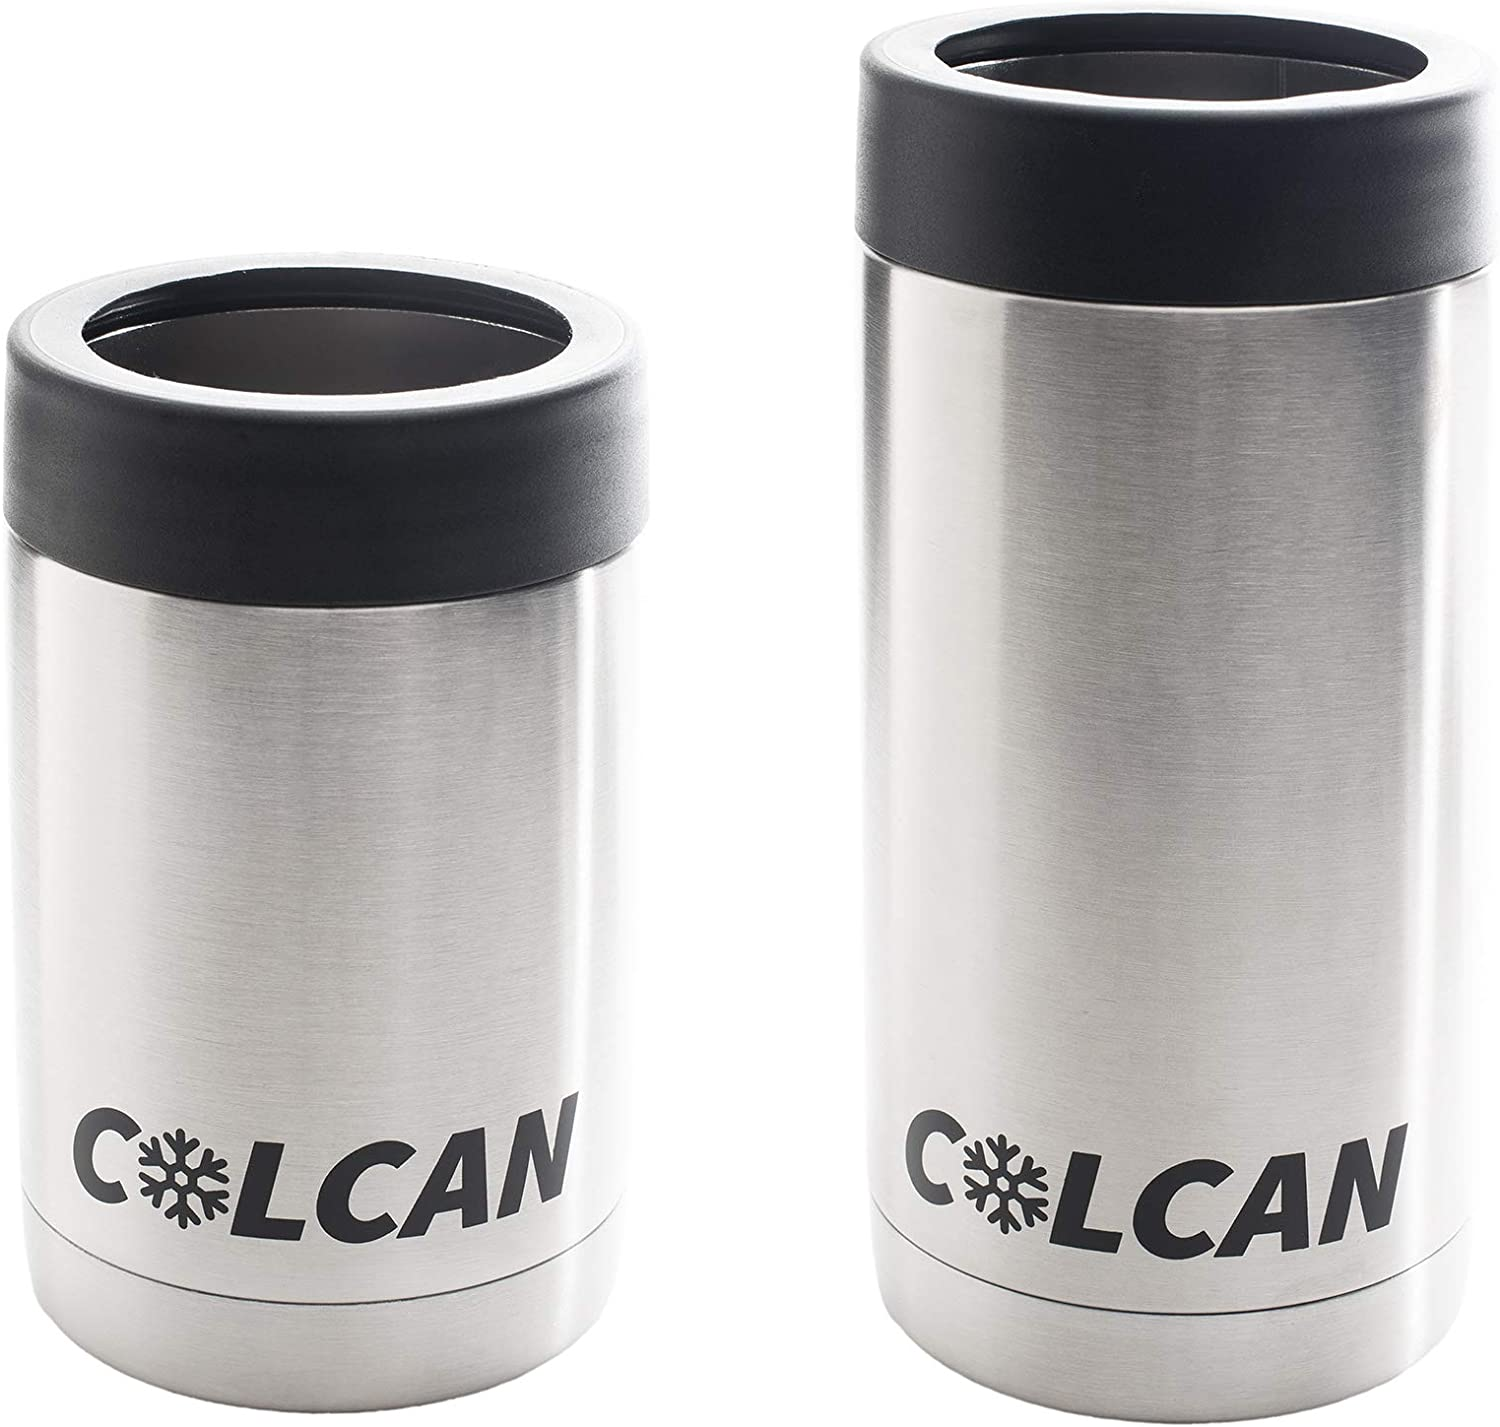 Colcan 12oz 16oz Can Cooler Combo - Stainless Steel Double Insulated